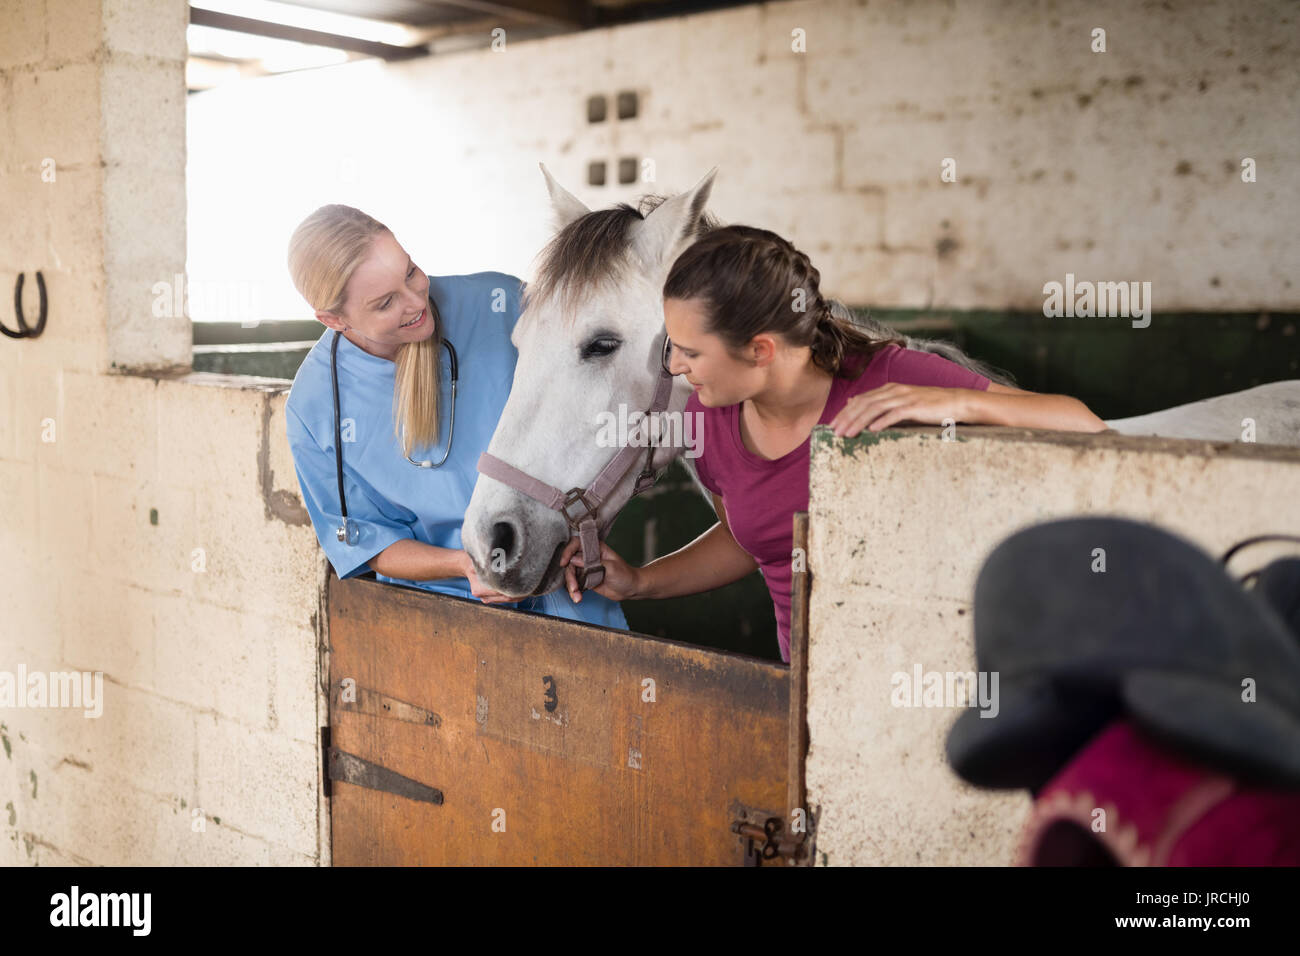 Female vet with woman looking at horse while standing in stable - Stock Image